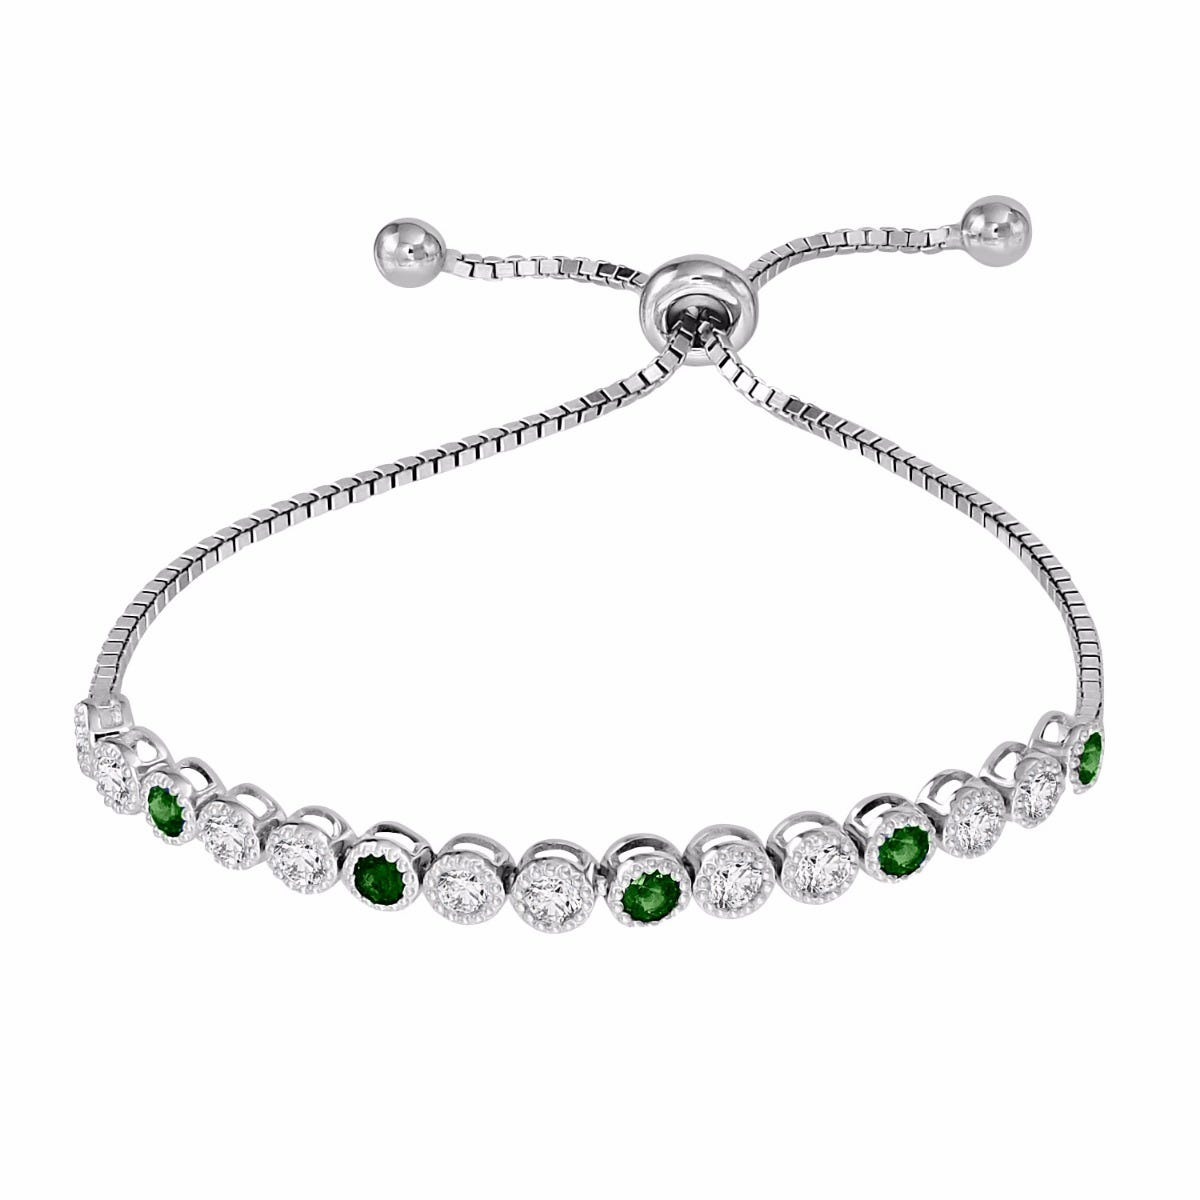 Emerald & White Zircon Bolo Bracelet in Sterling Silver